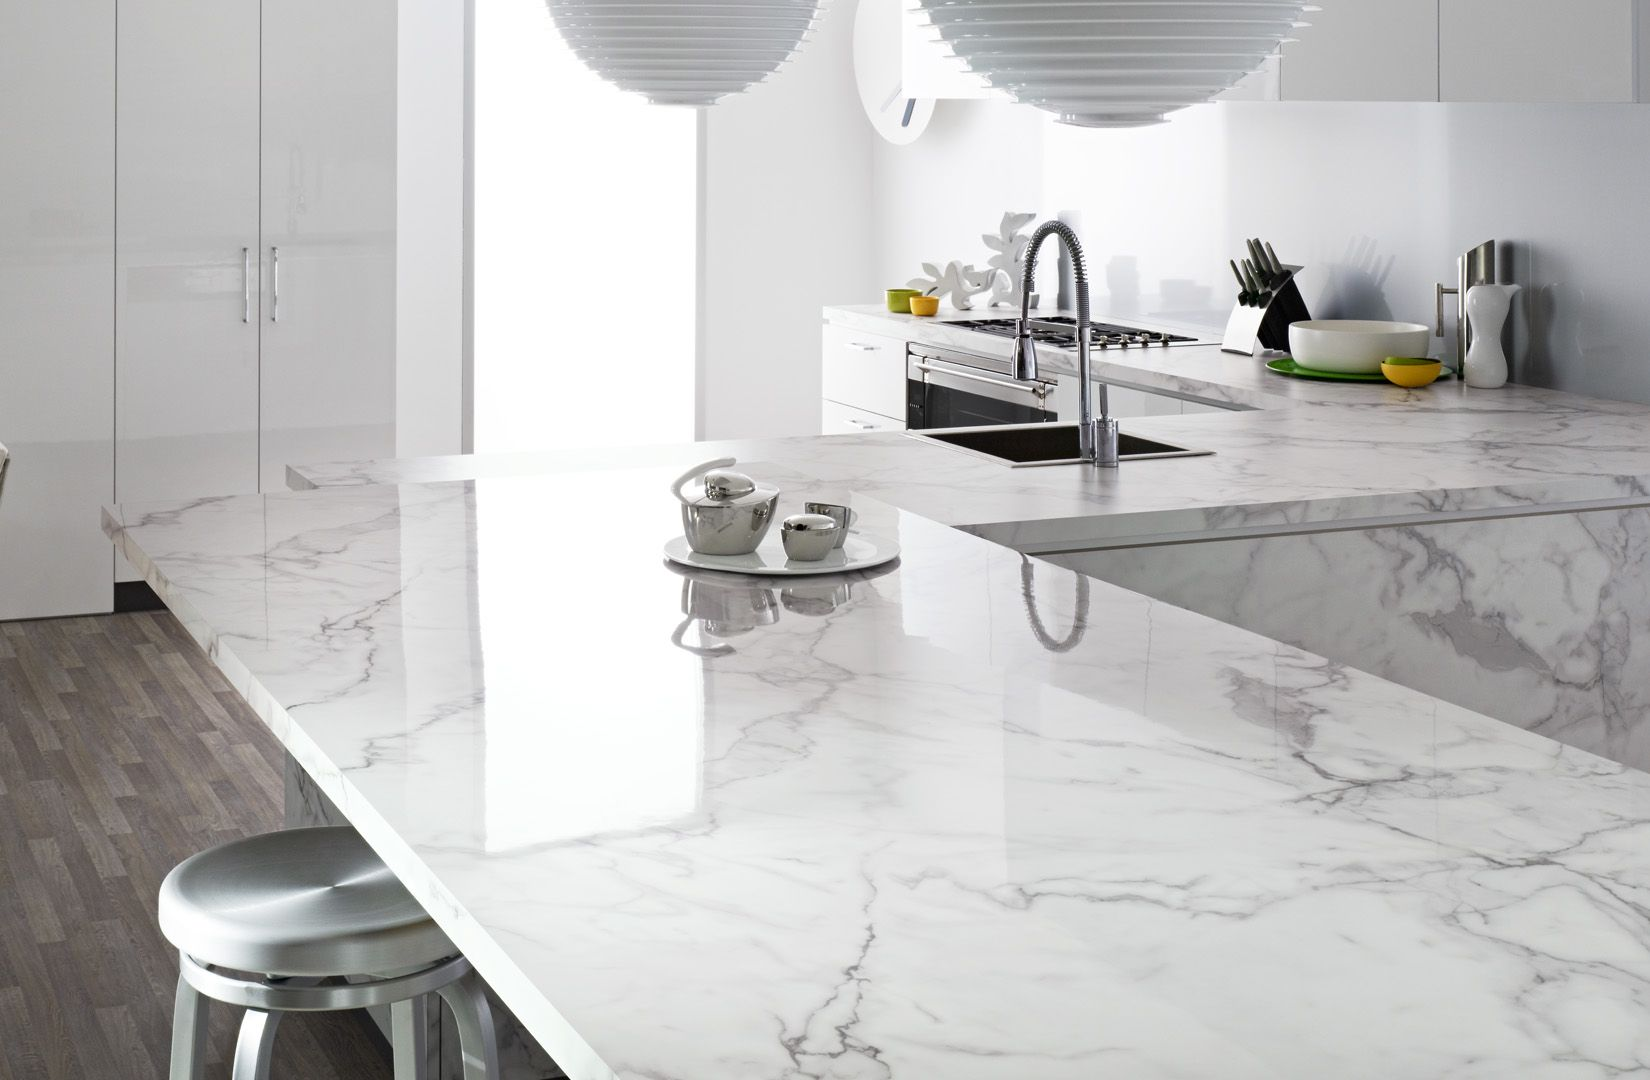 Laminex 180fx Carrara Marble diamond gloss for benchtop replacement ...